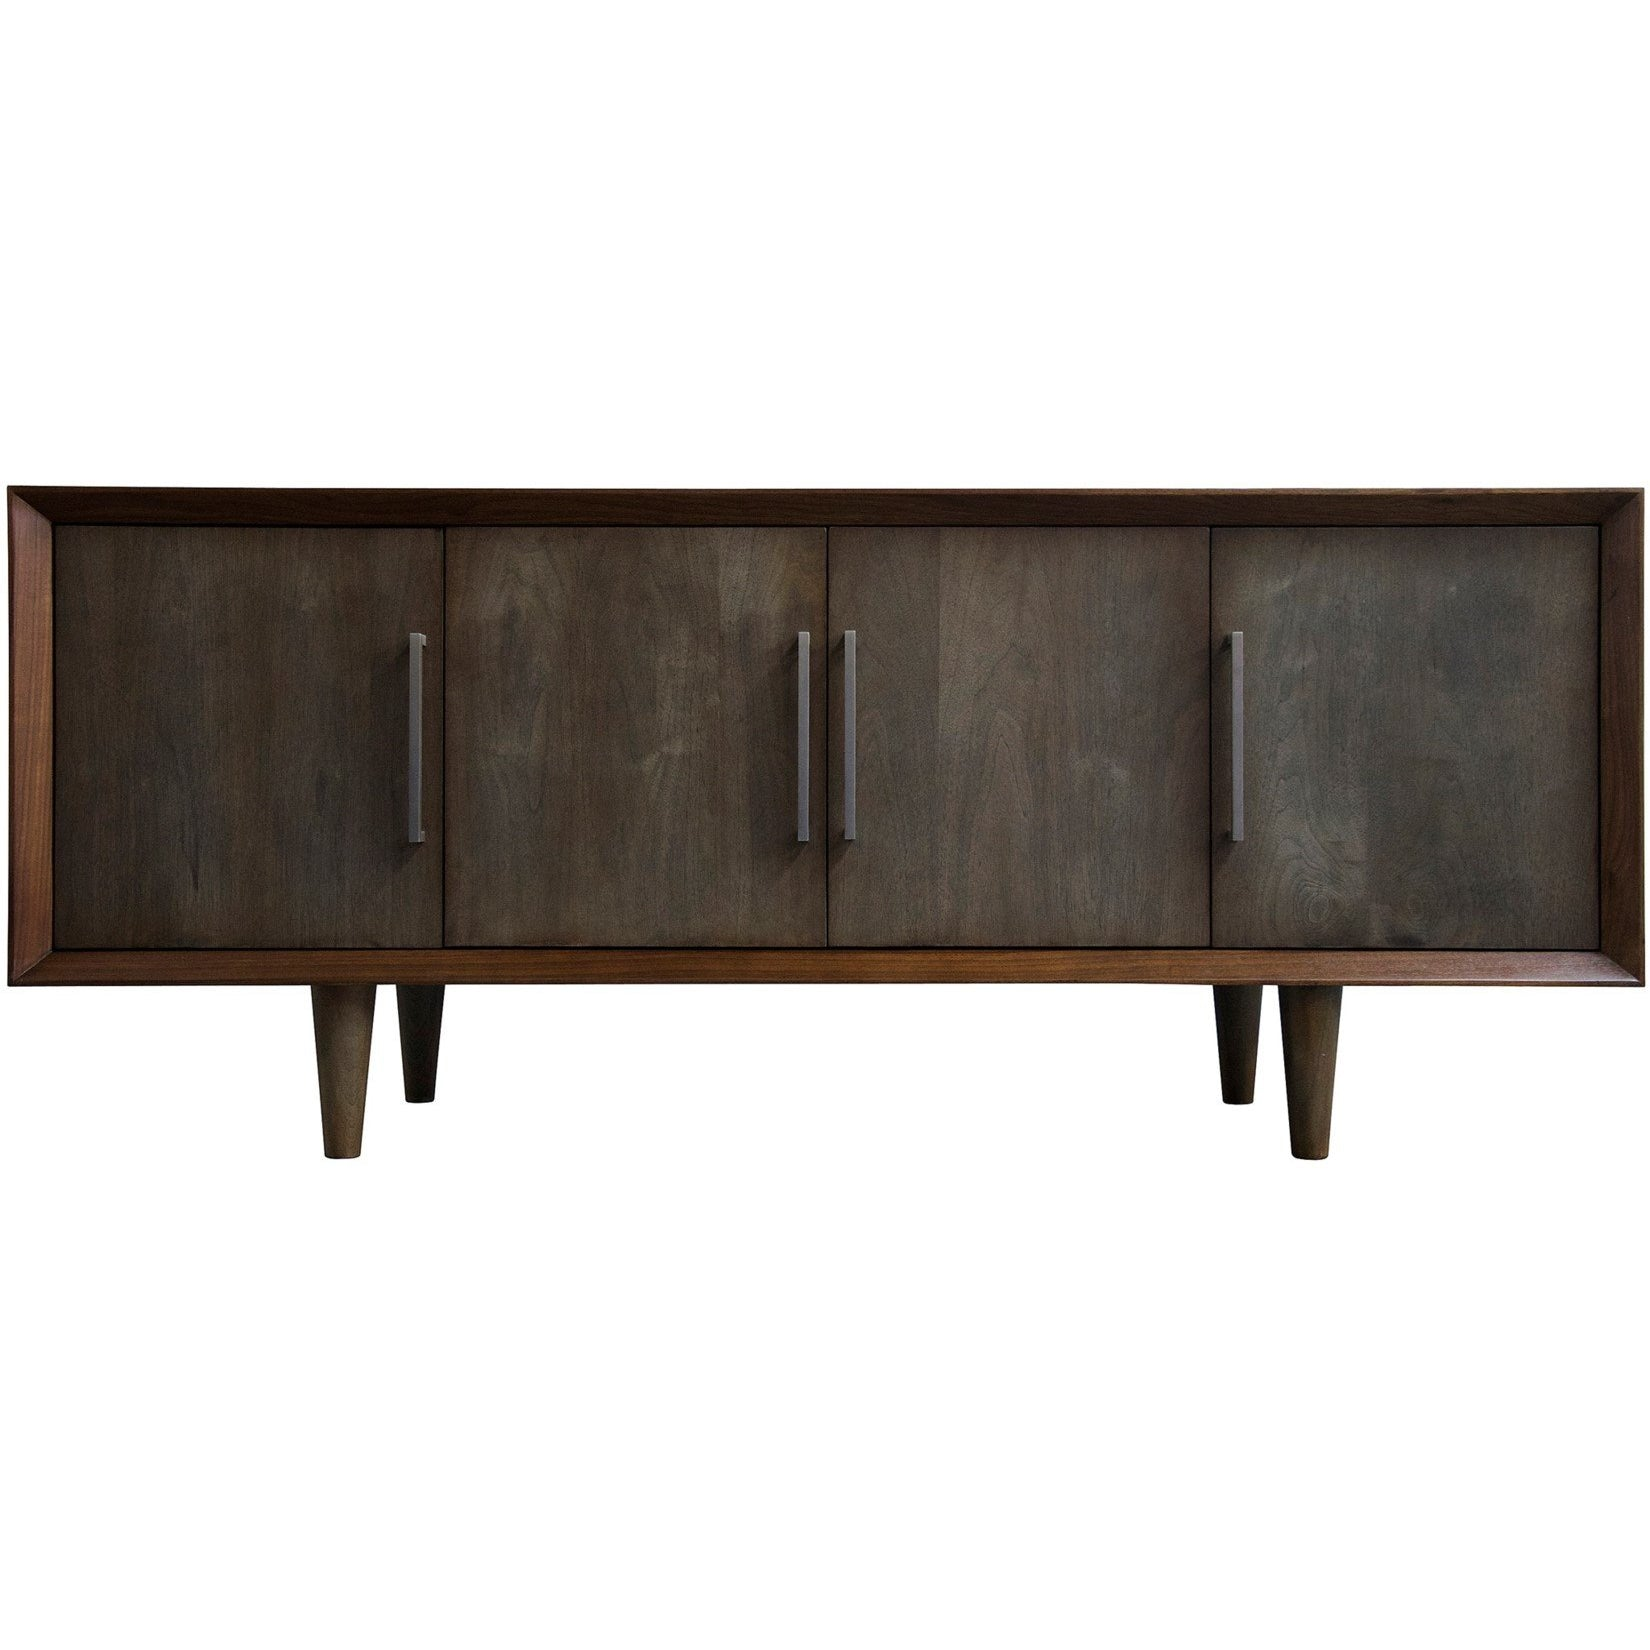 CFC Furniture Mink Sideboard